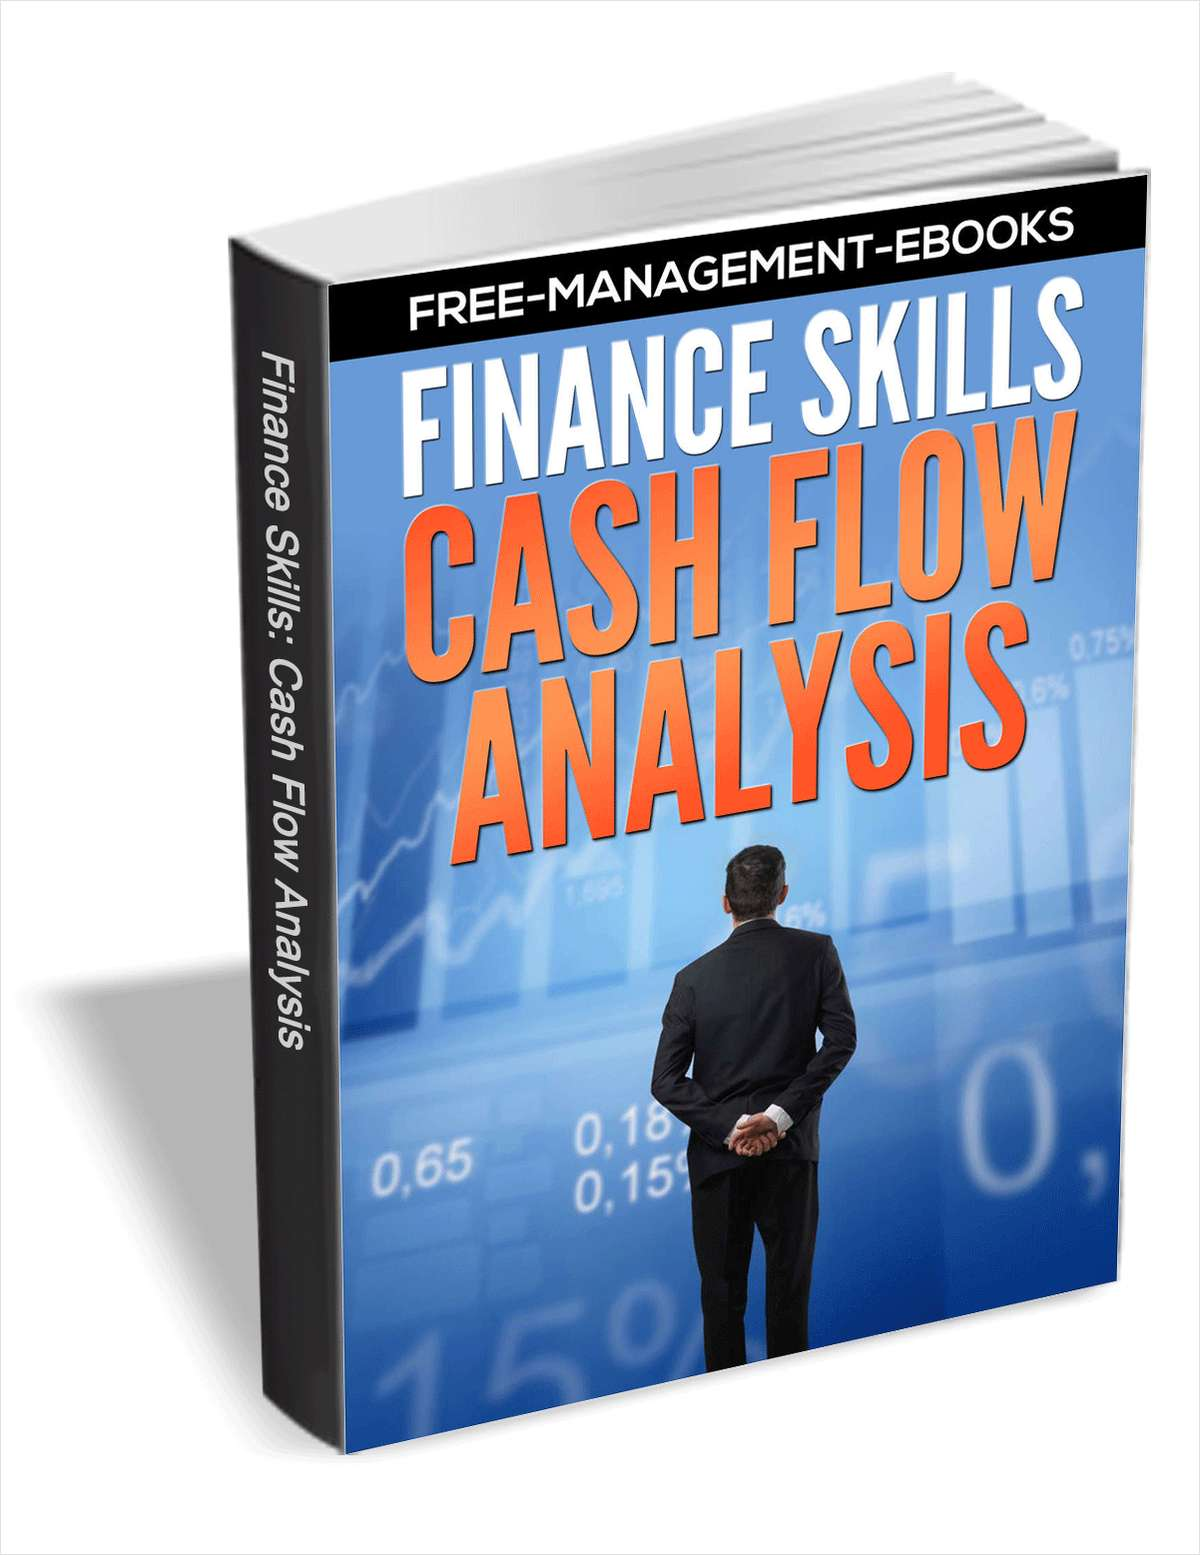 Cash Flow Analysis - Developing Your Finance Skills